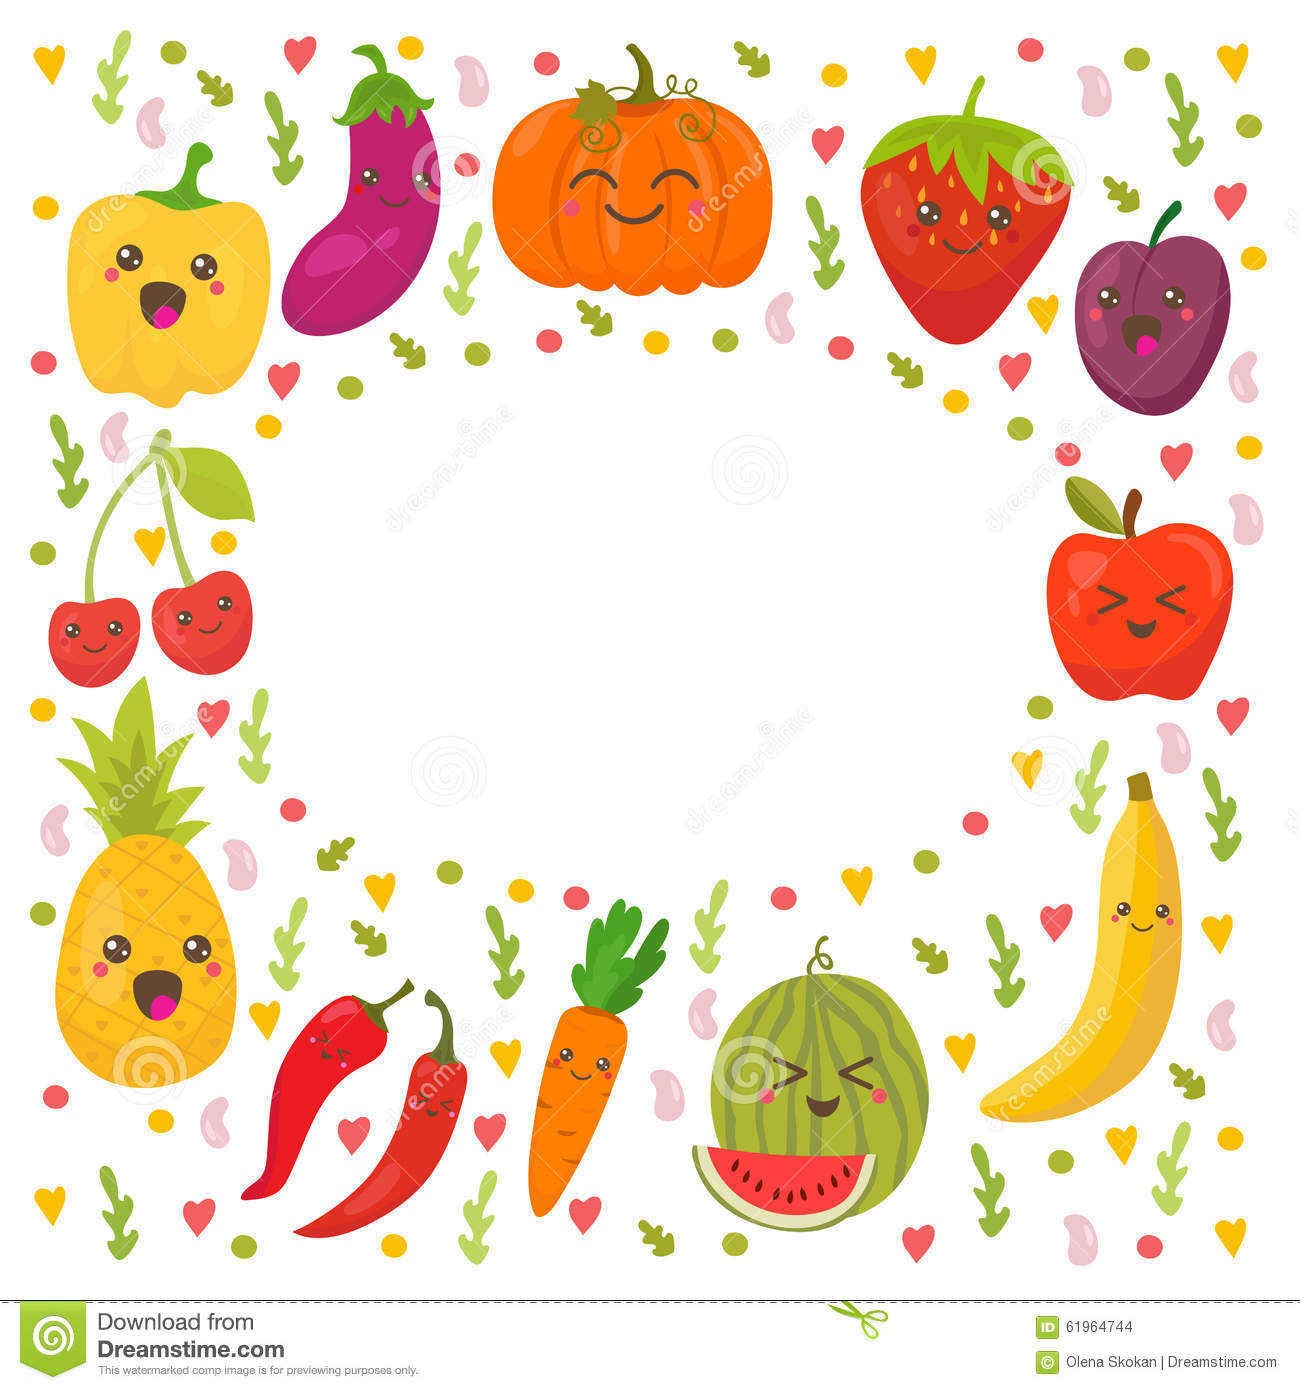 Fruits And Vegetables Images Stock Photos amp Vectors